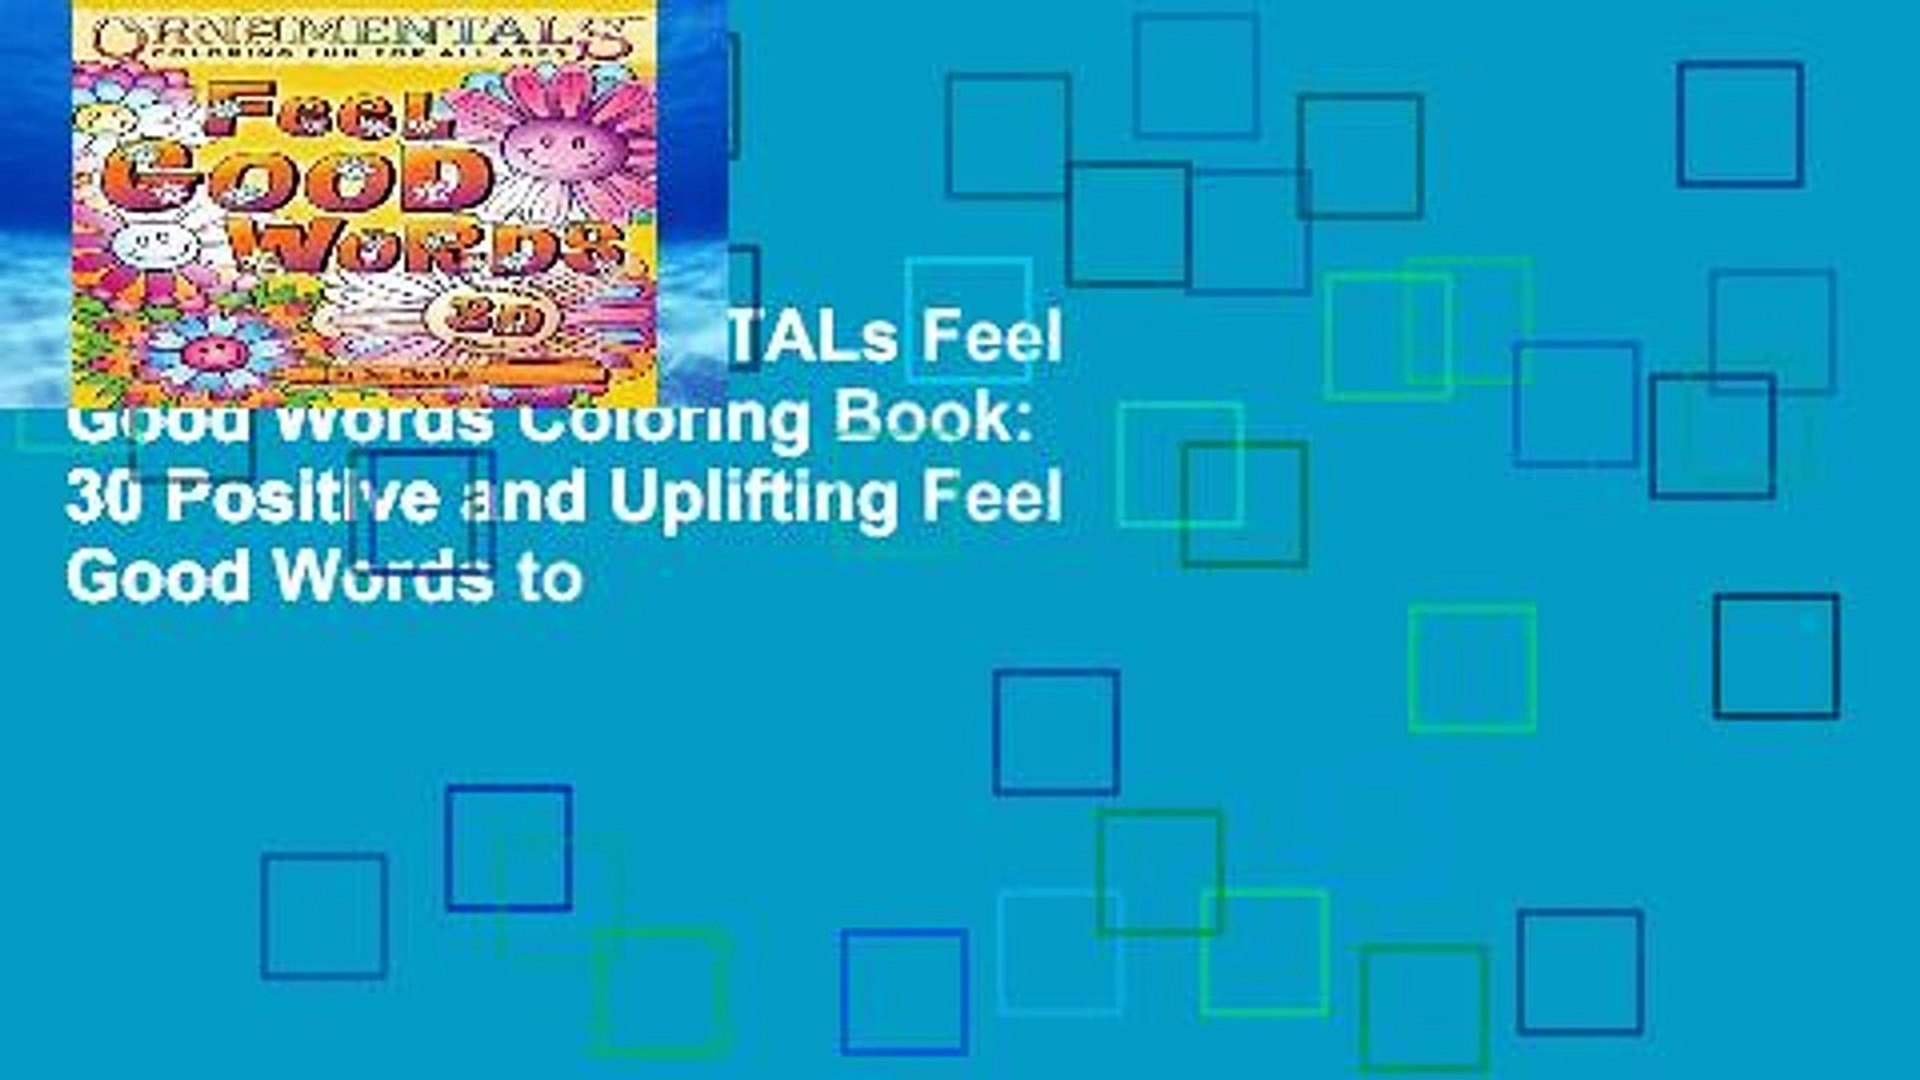 Popular  OrnaMENTALs Feel Good Words Coloring Book: 30 Positive and Uplifting Feel Good Words to